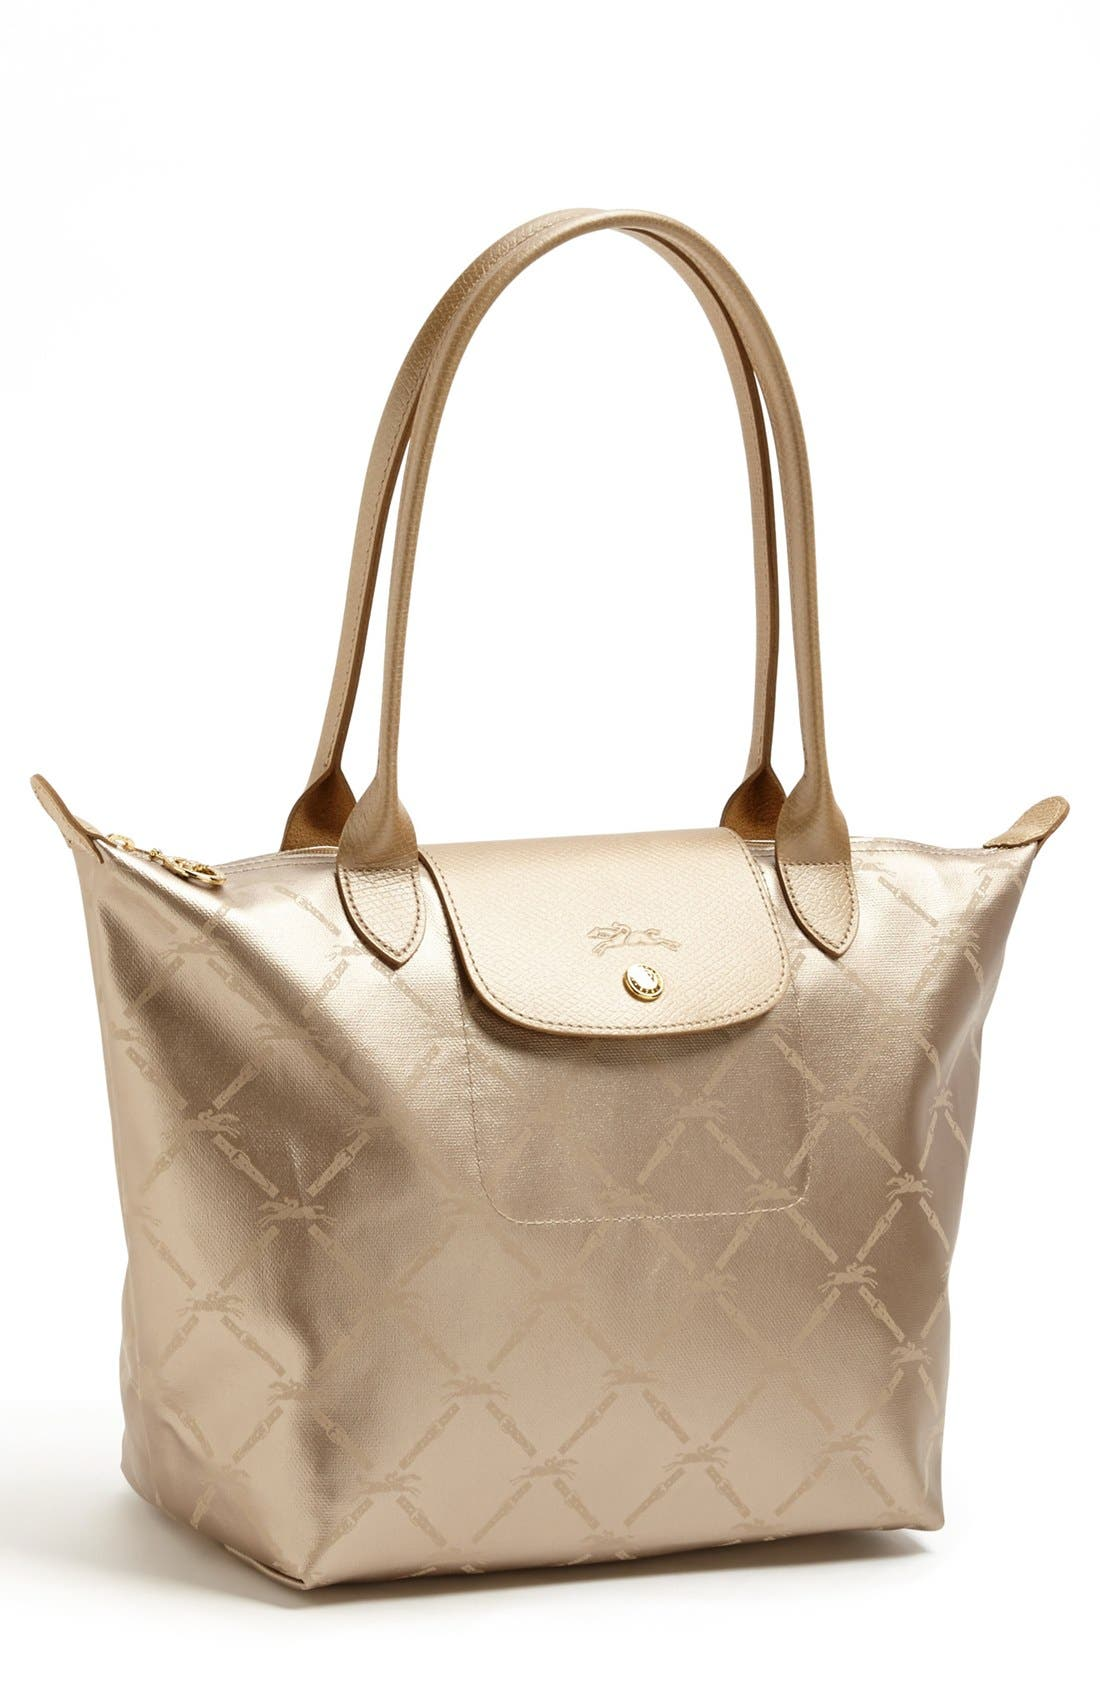 Alternate Image 1 Selected - Longchamp 'Medium LM Métal' Shoulder Tote